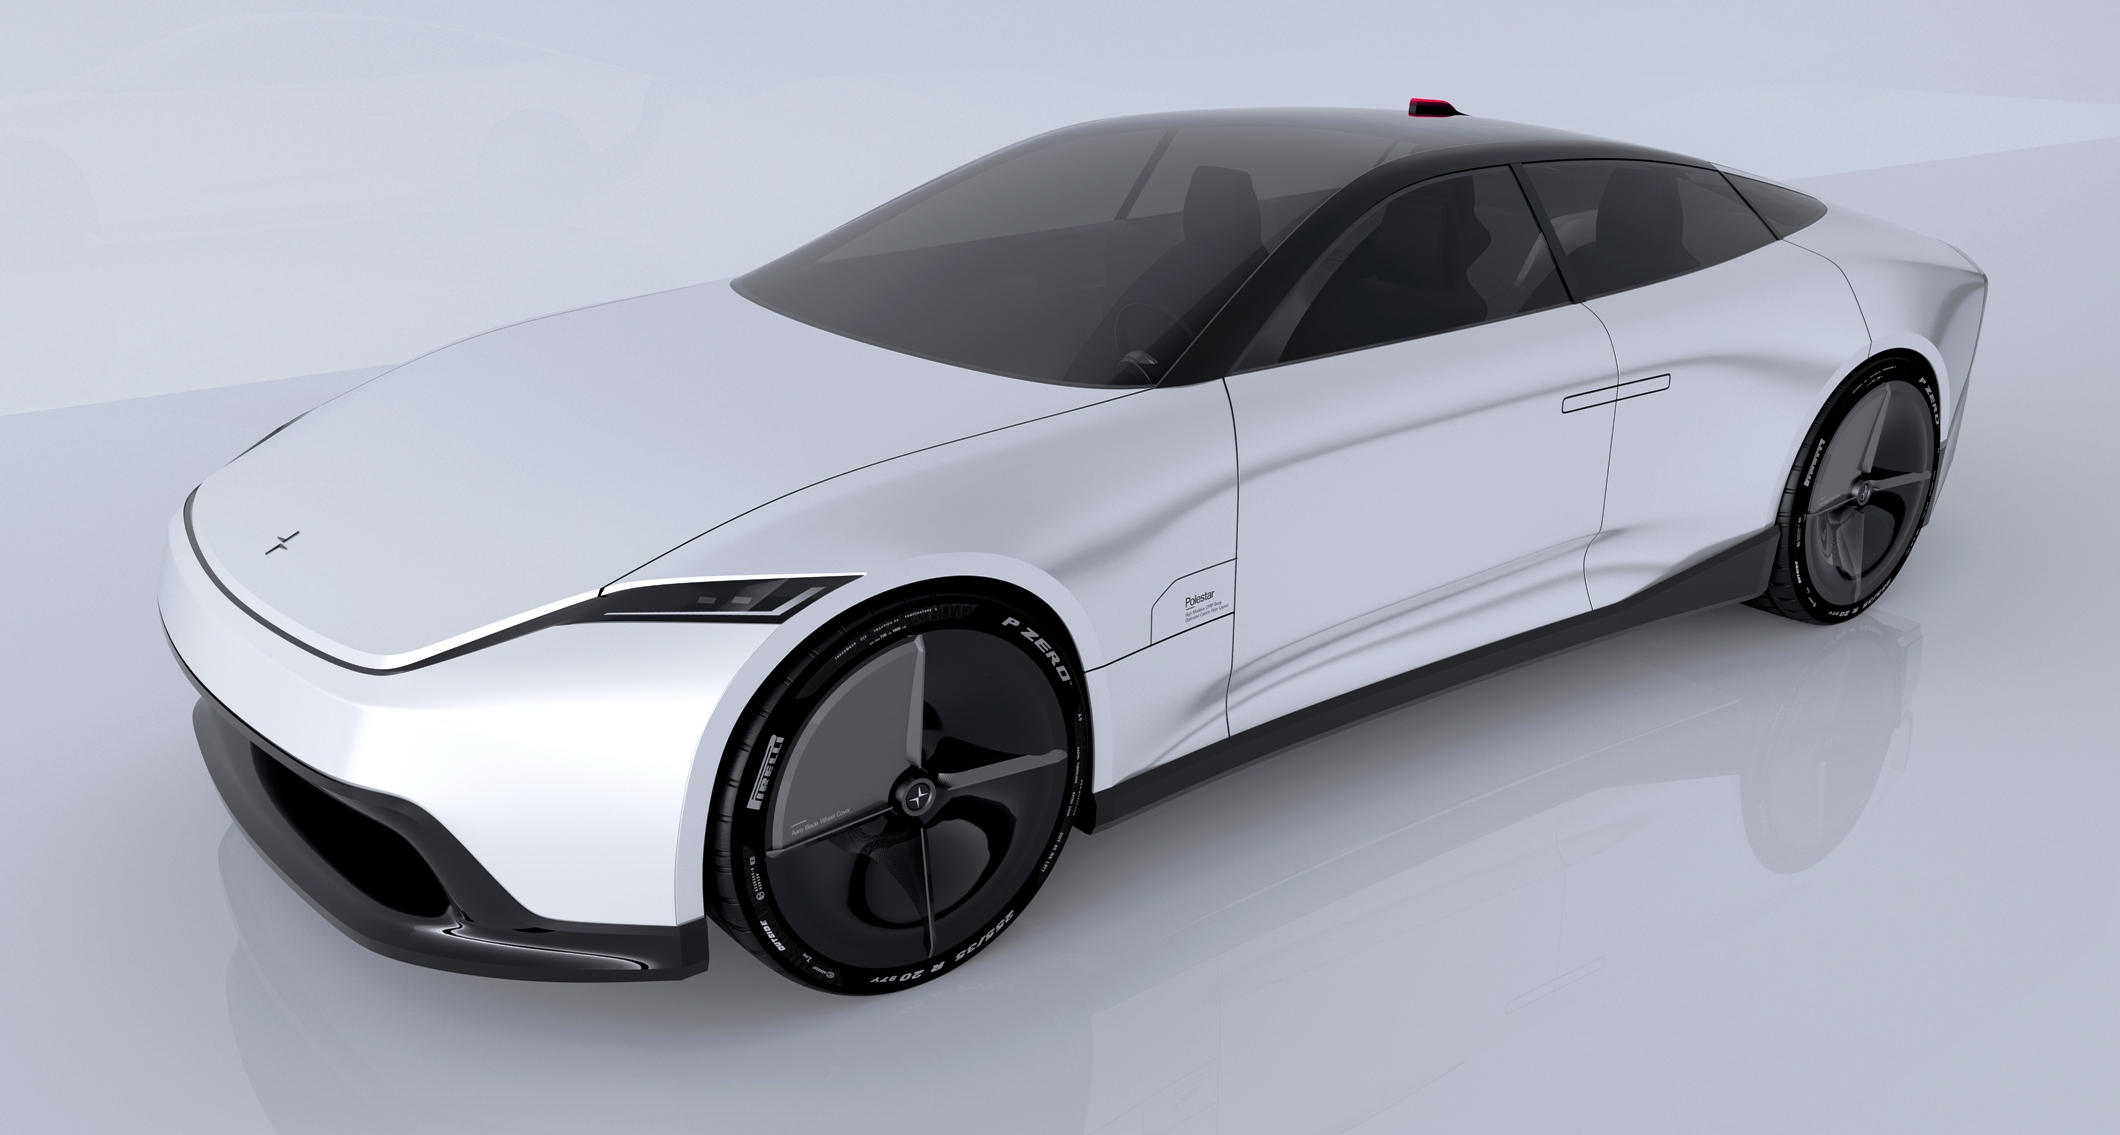 Polestar 7 Concept rendering front three quarter view